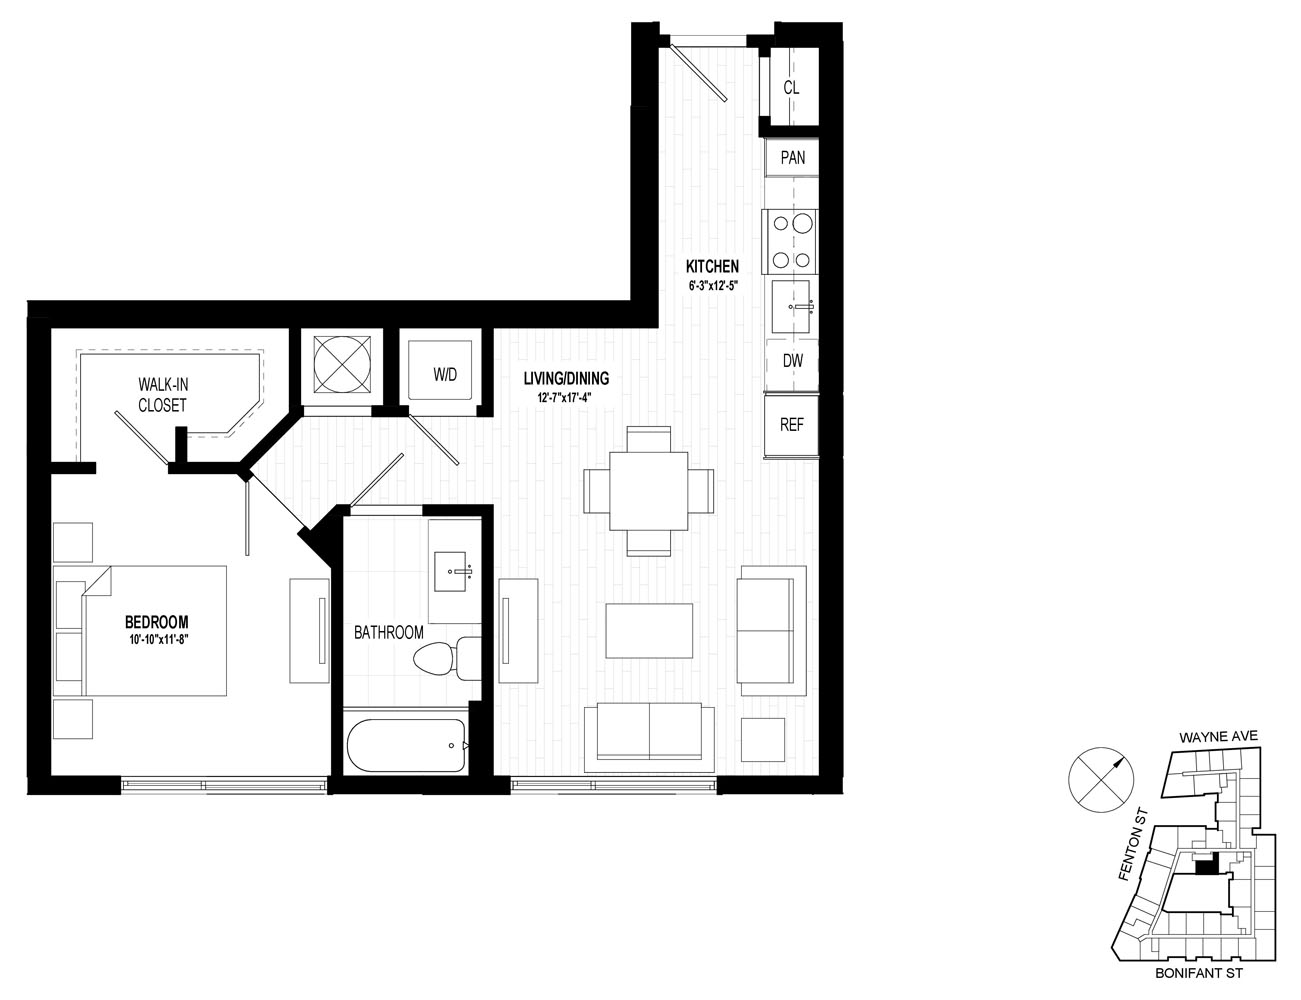 P0578887 761aa07 central a14 633 2 floorplan